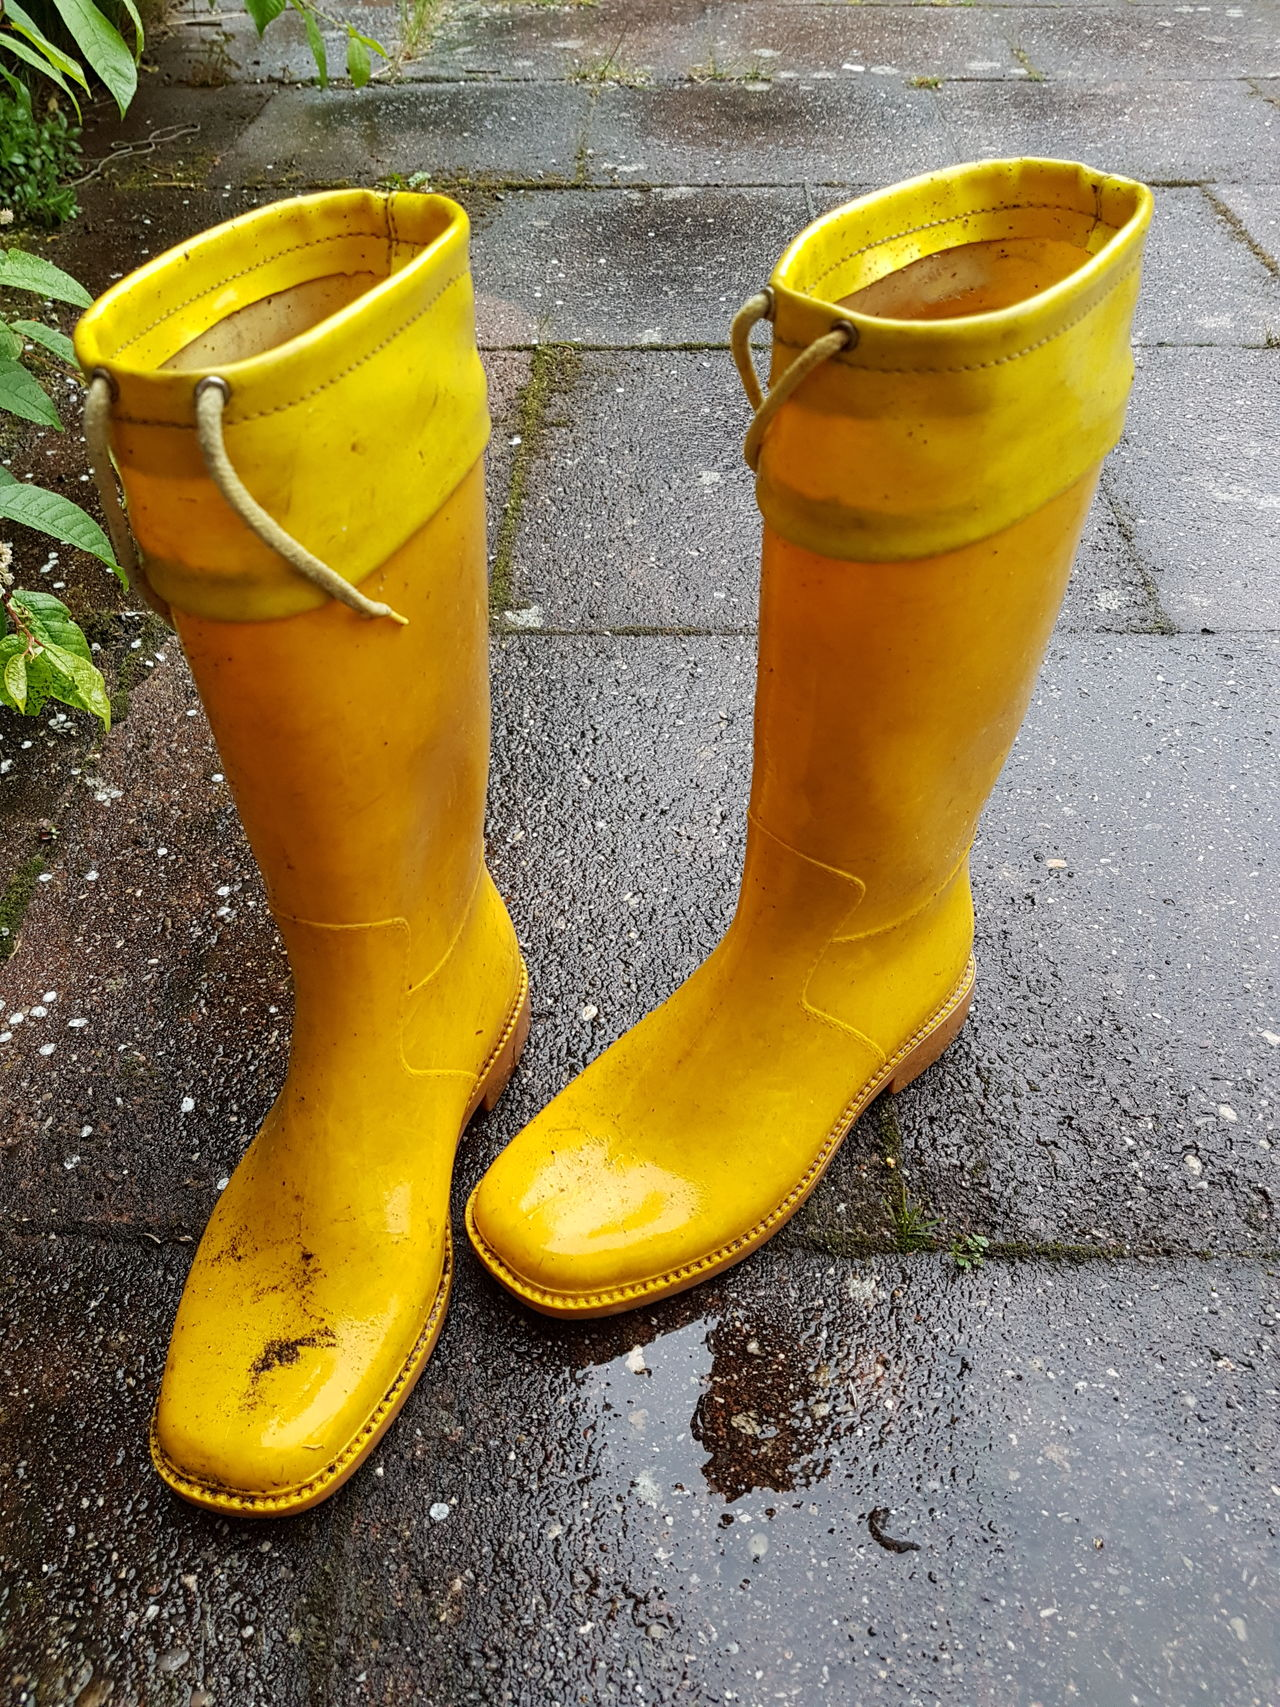 Rubber Boots Yellow Rubber Boots Woman Shoes Yellow Rainy Day Rain Pair No People Day Outdoors